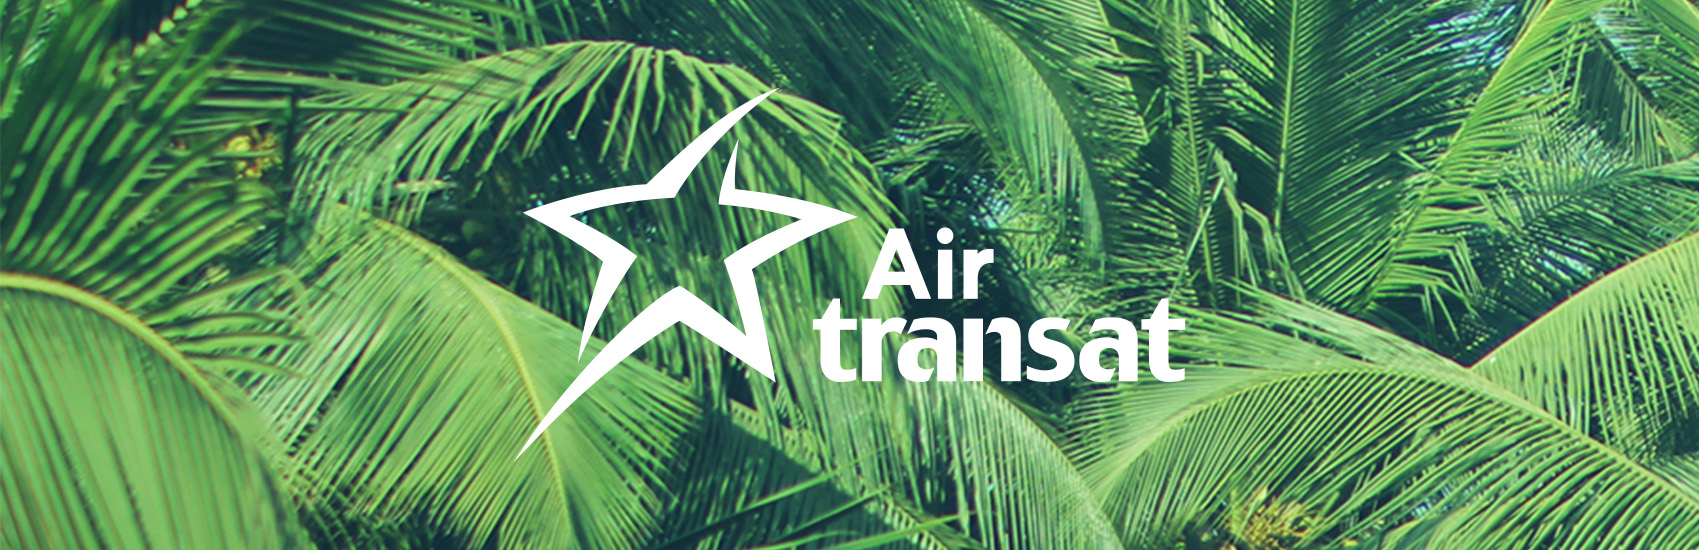 Keep Palm and Travel On with Air Transat 0